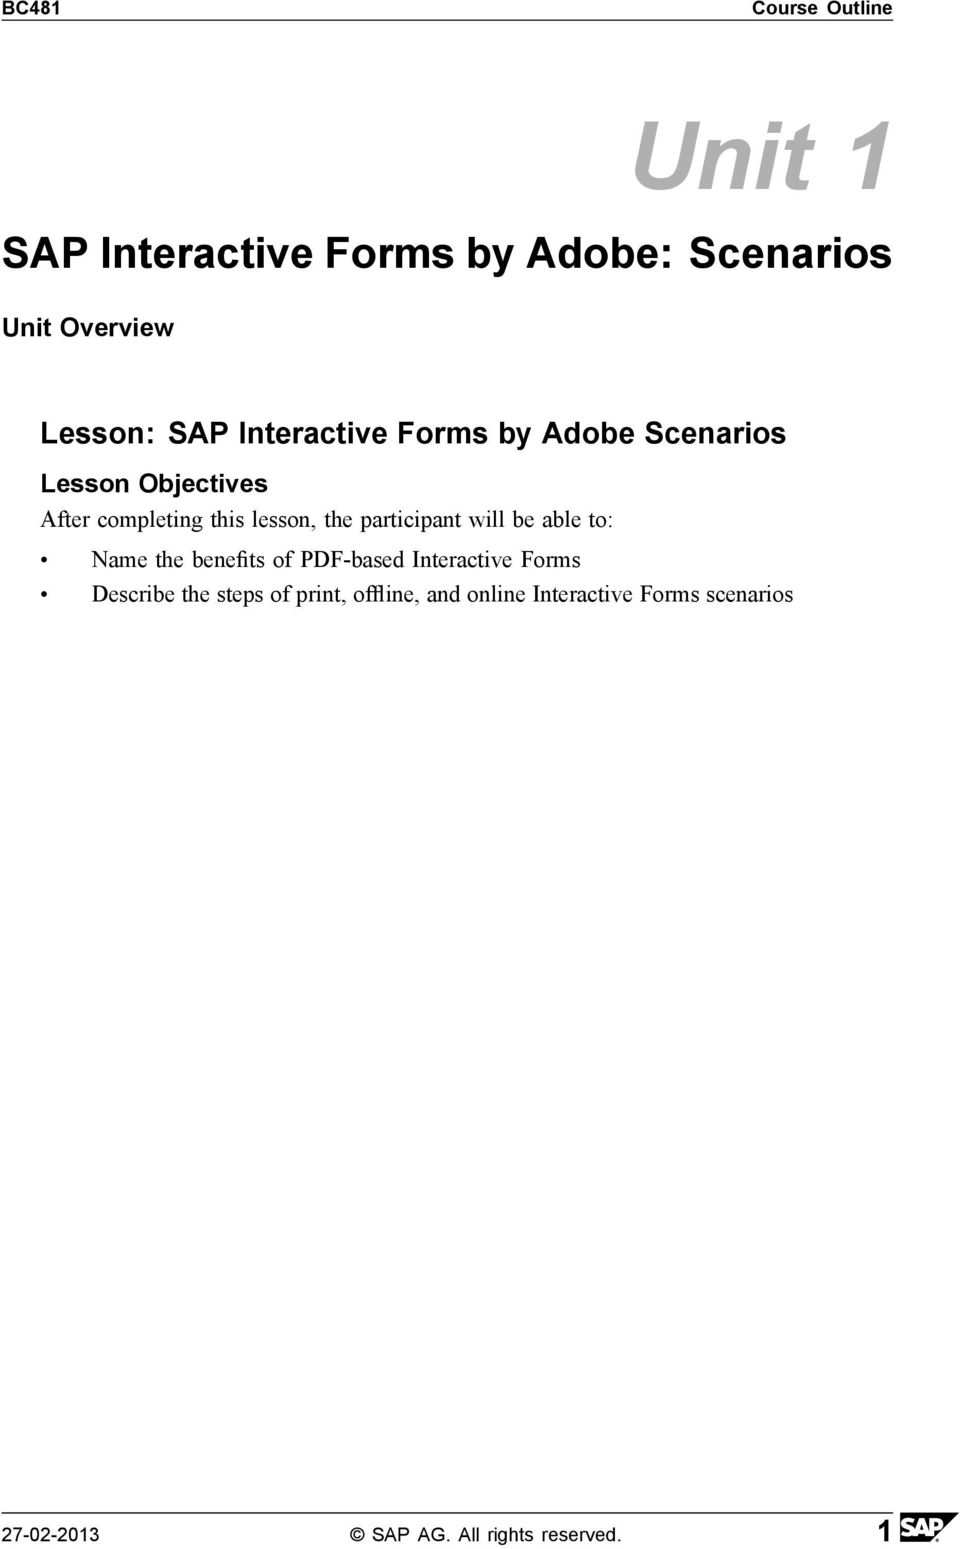 BC481 SAP Interactive Forms by Adobe - PDF